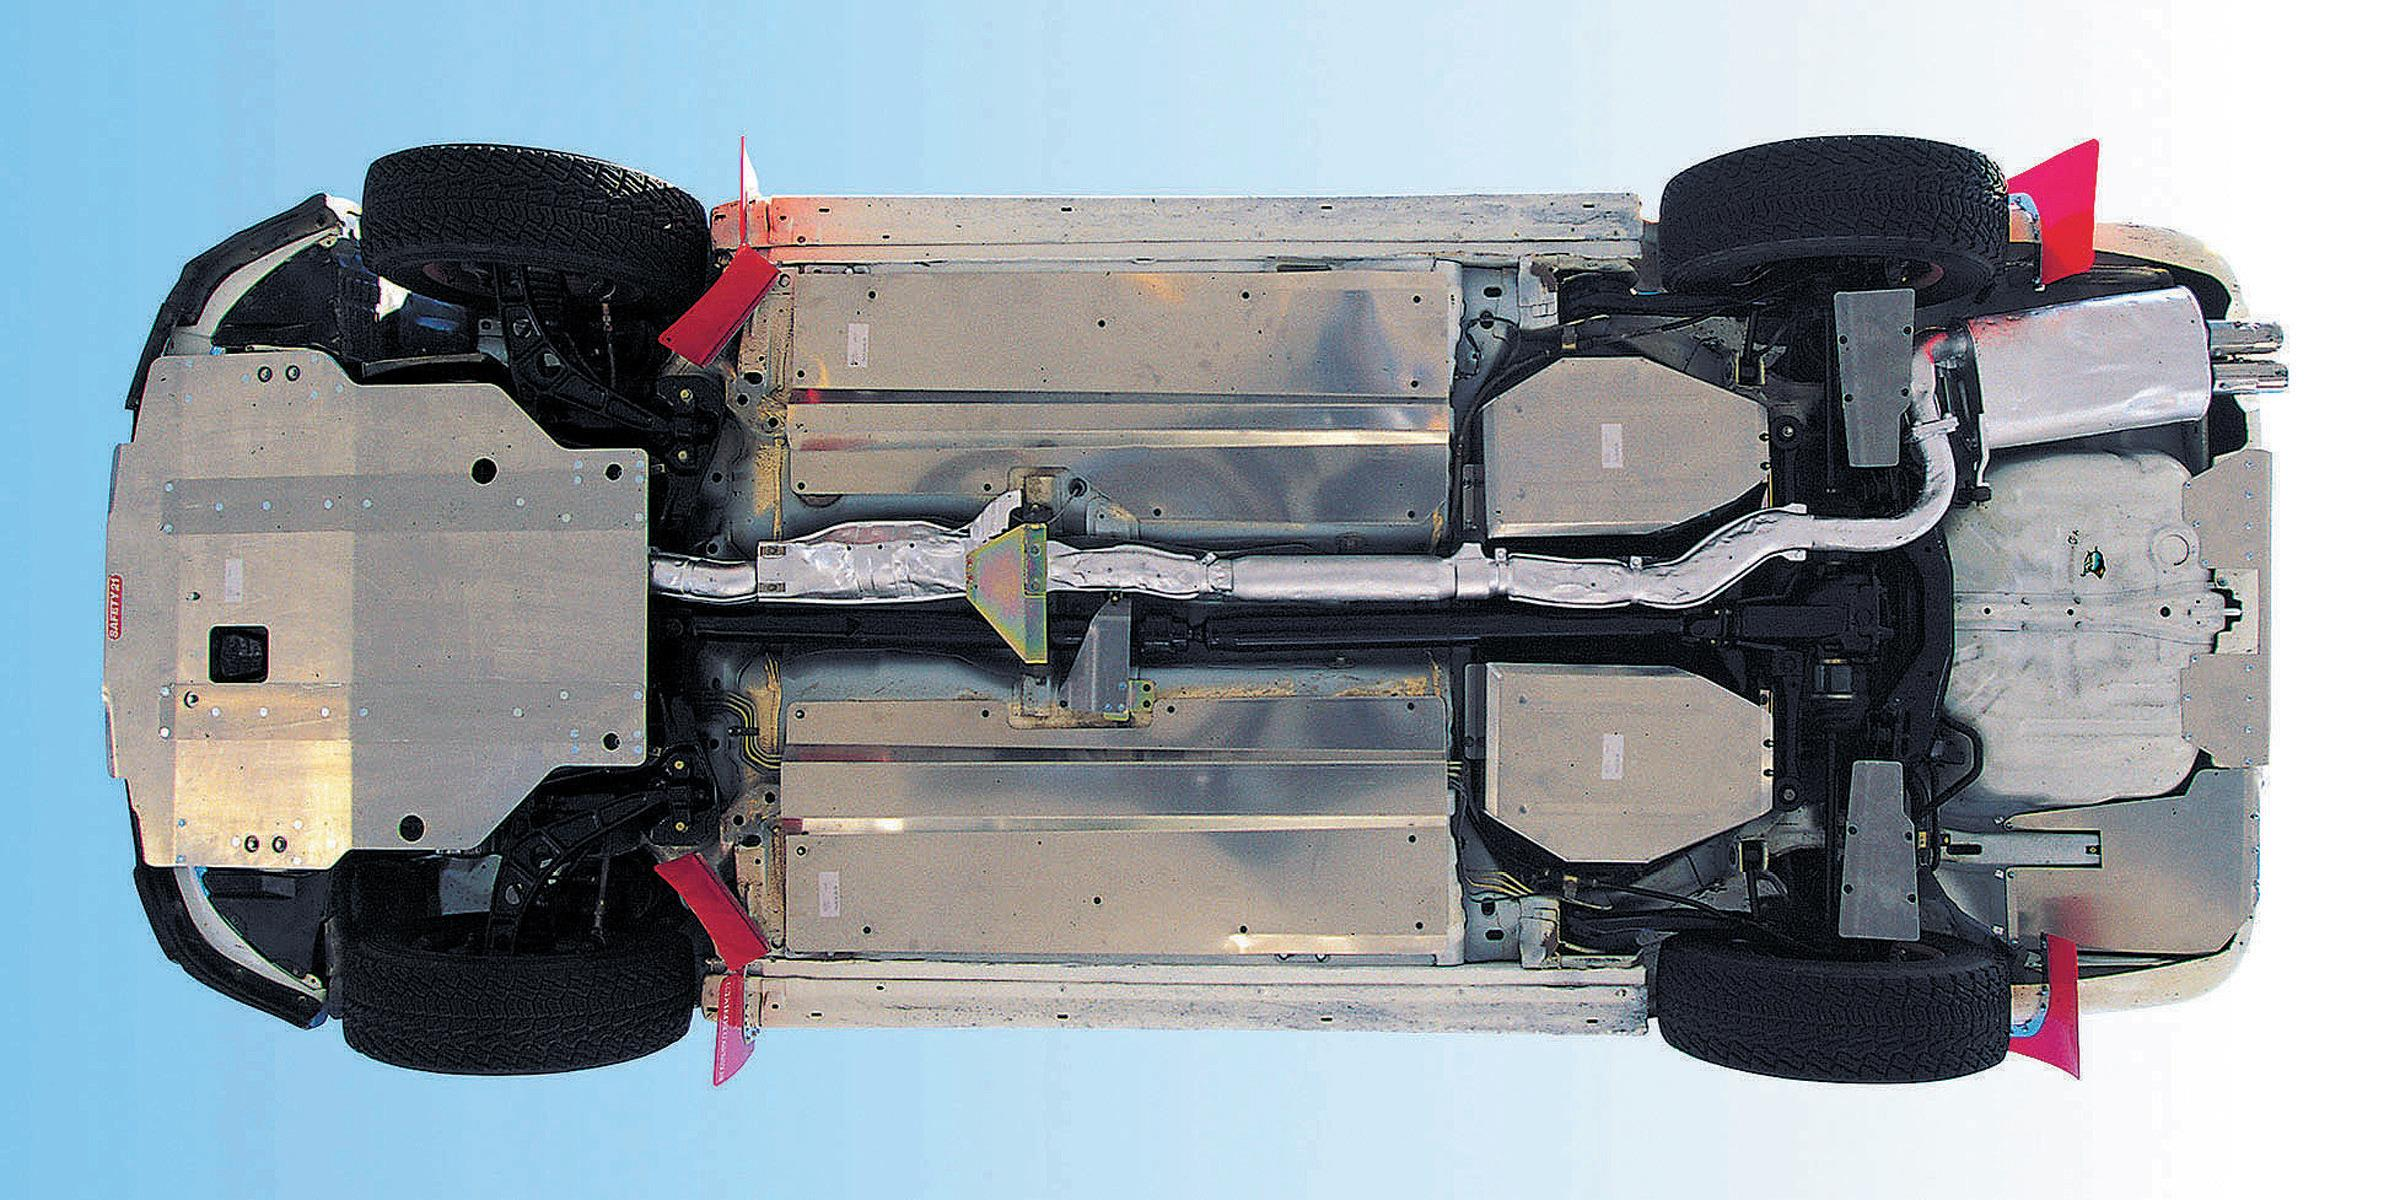 Heavy Duty Body Under Guard Panel Set for Off-Road use